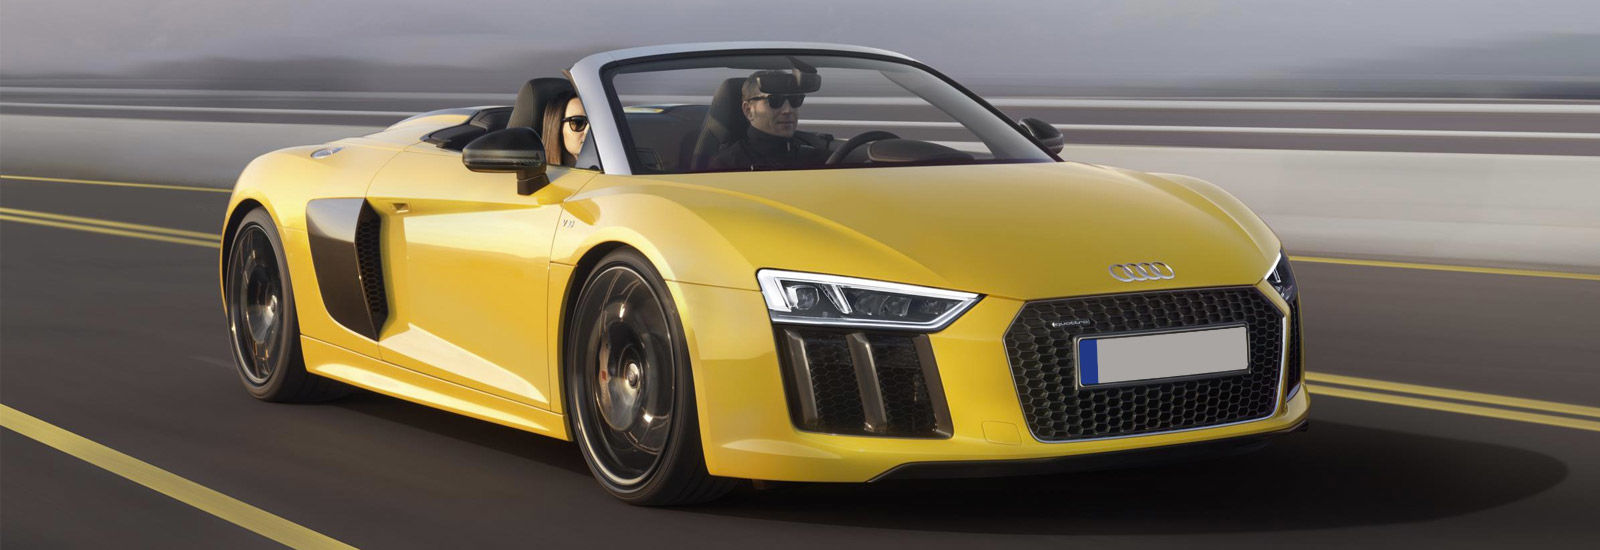 Audi R V Spyder Price Specs And Release Date Carwow - Audi r8 cost